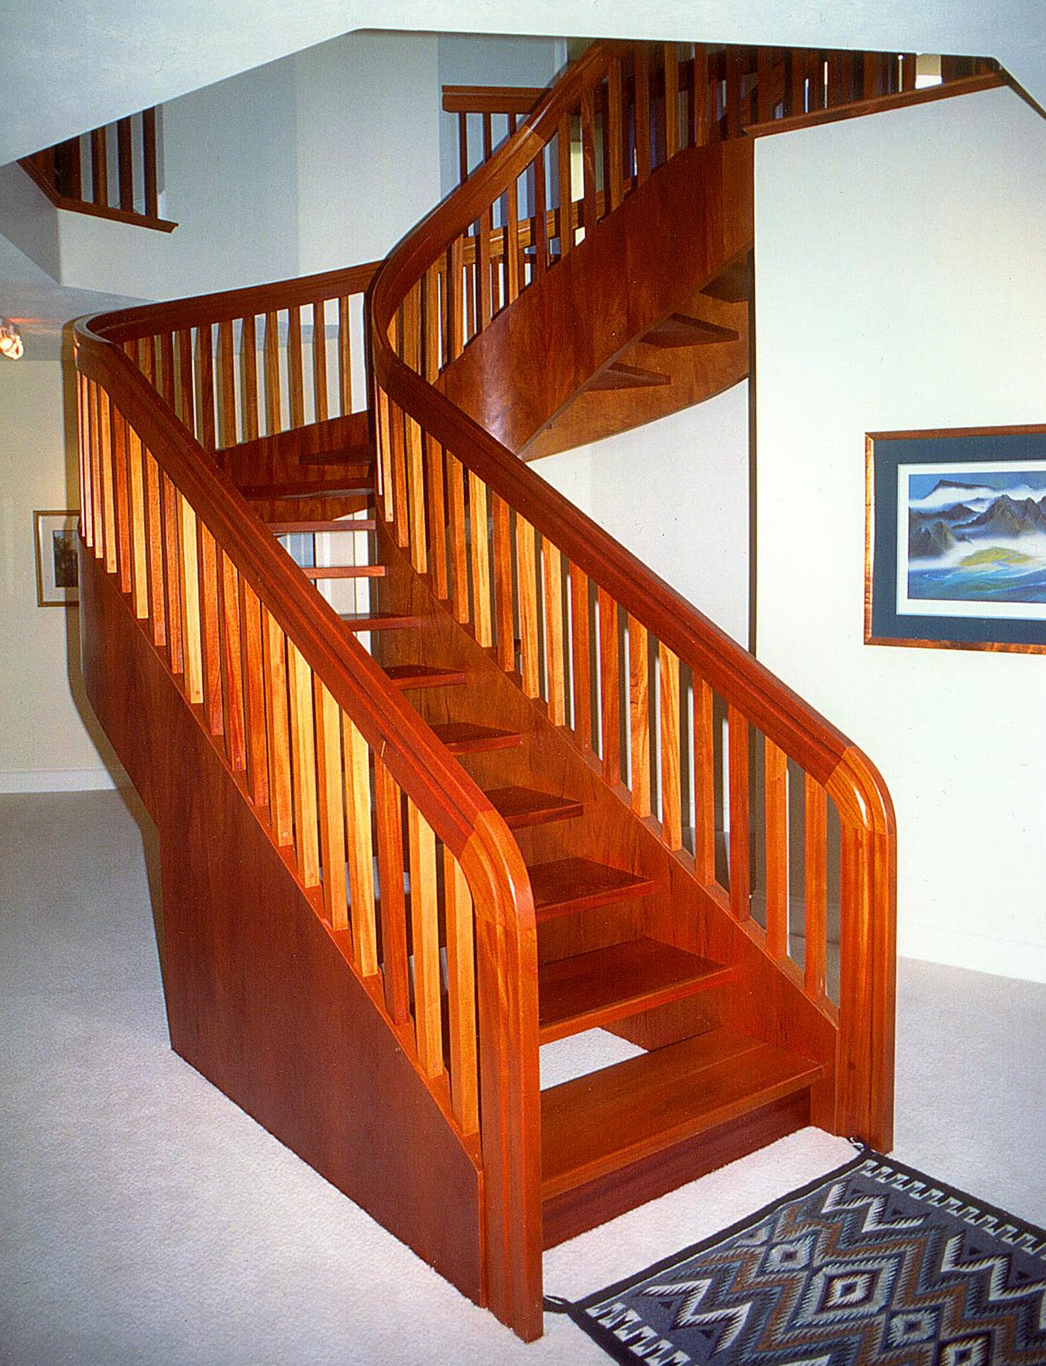 Wooden Stairs With Wooden Handrails For Stairs Ideas With White Wall Plus  Picture And Ceremics Floor